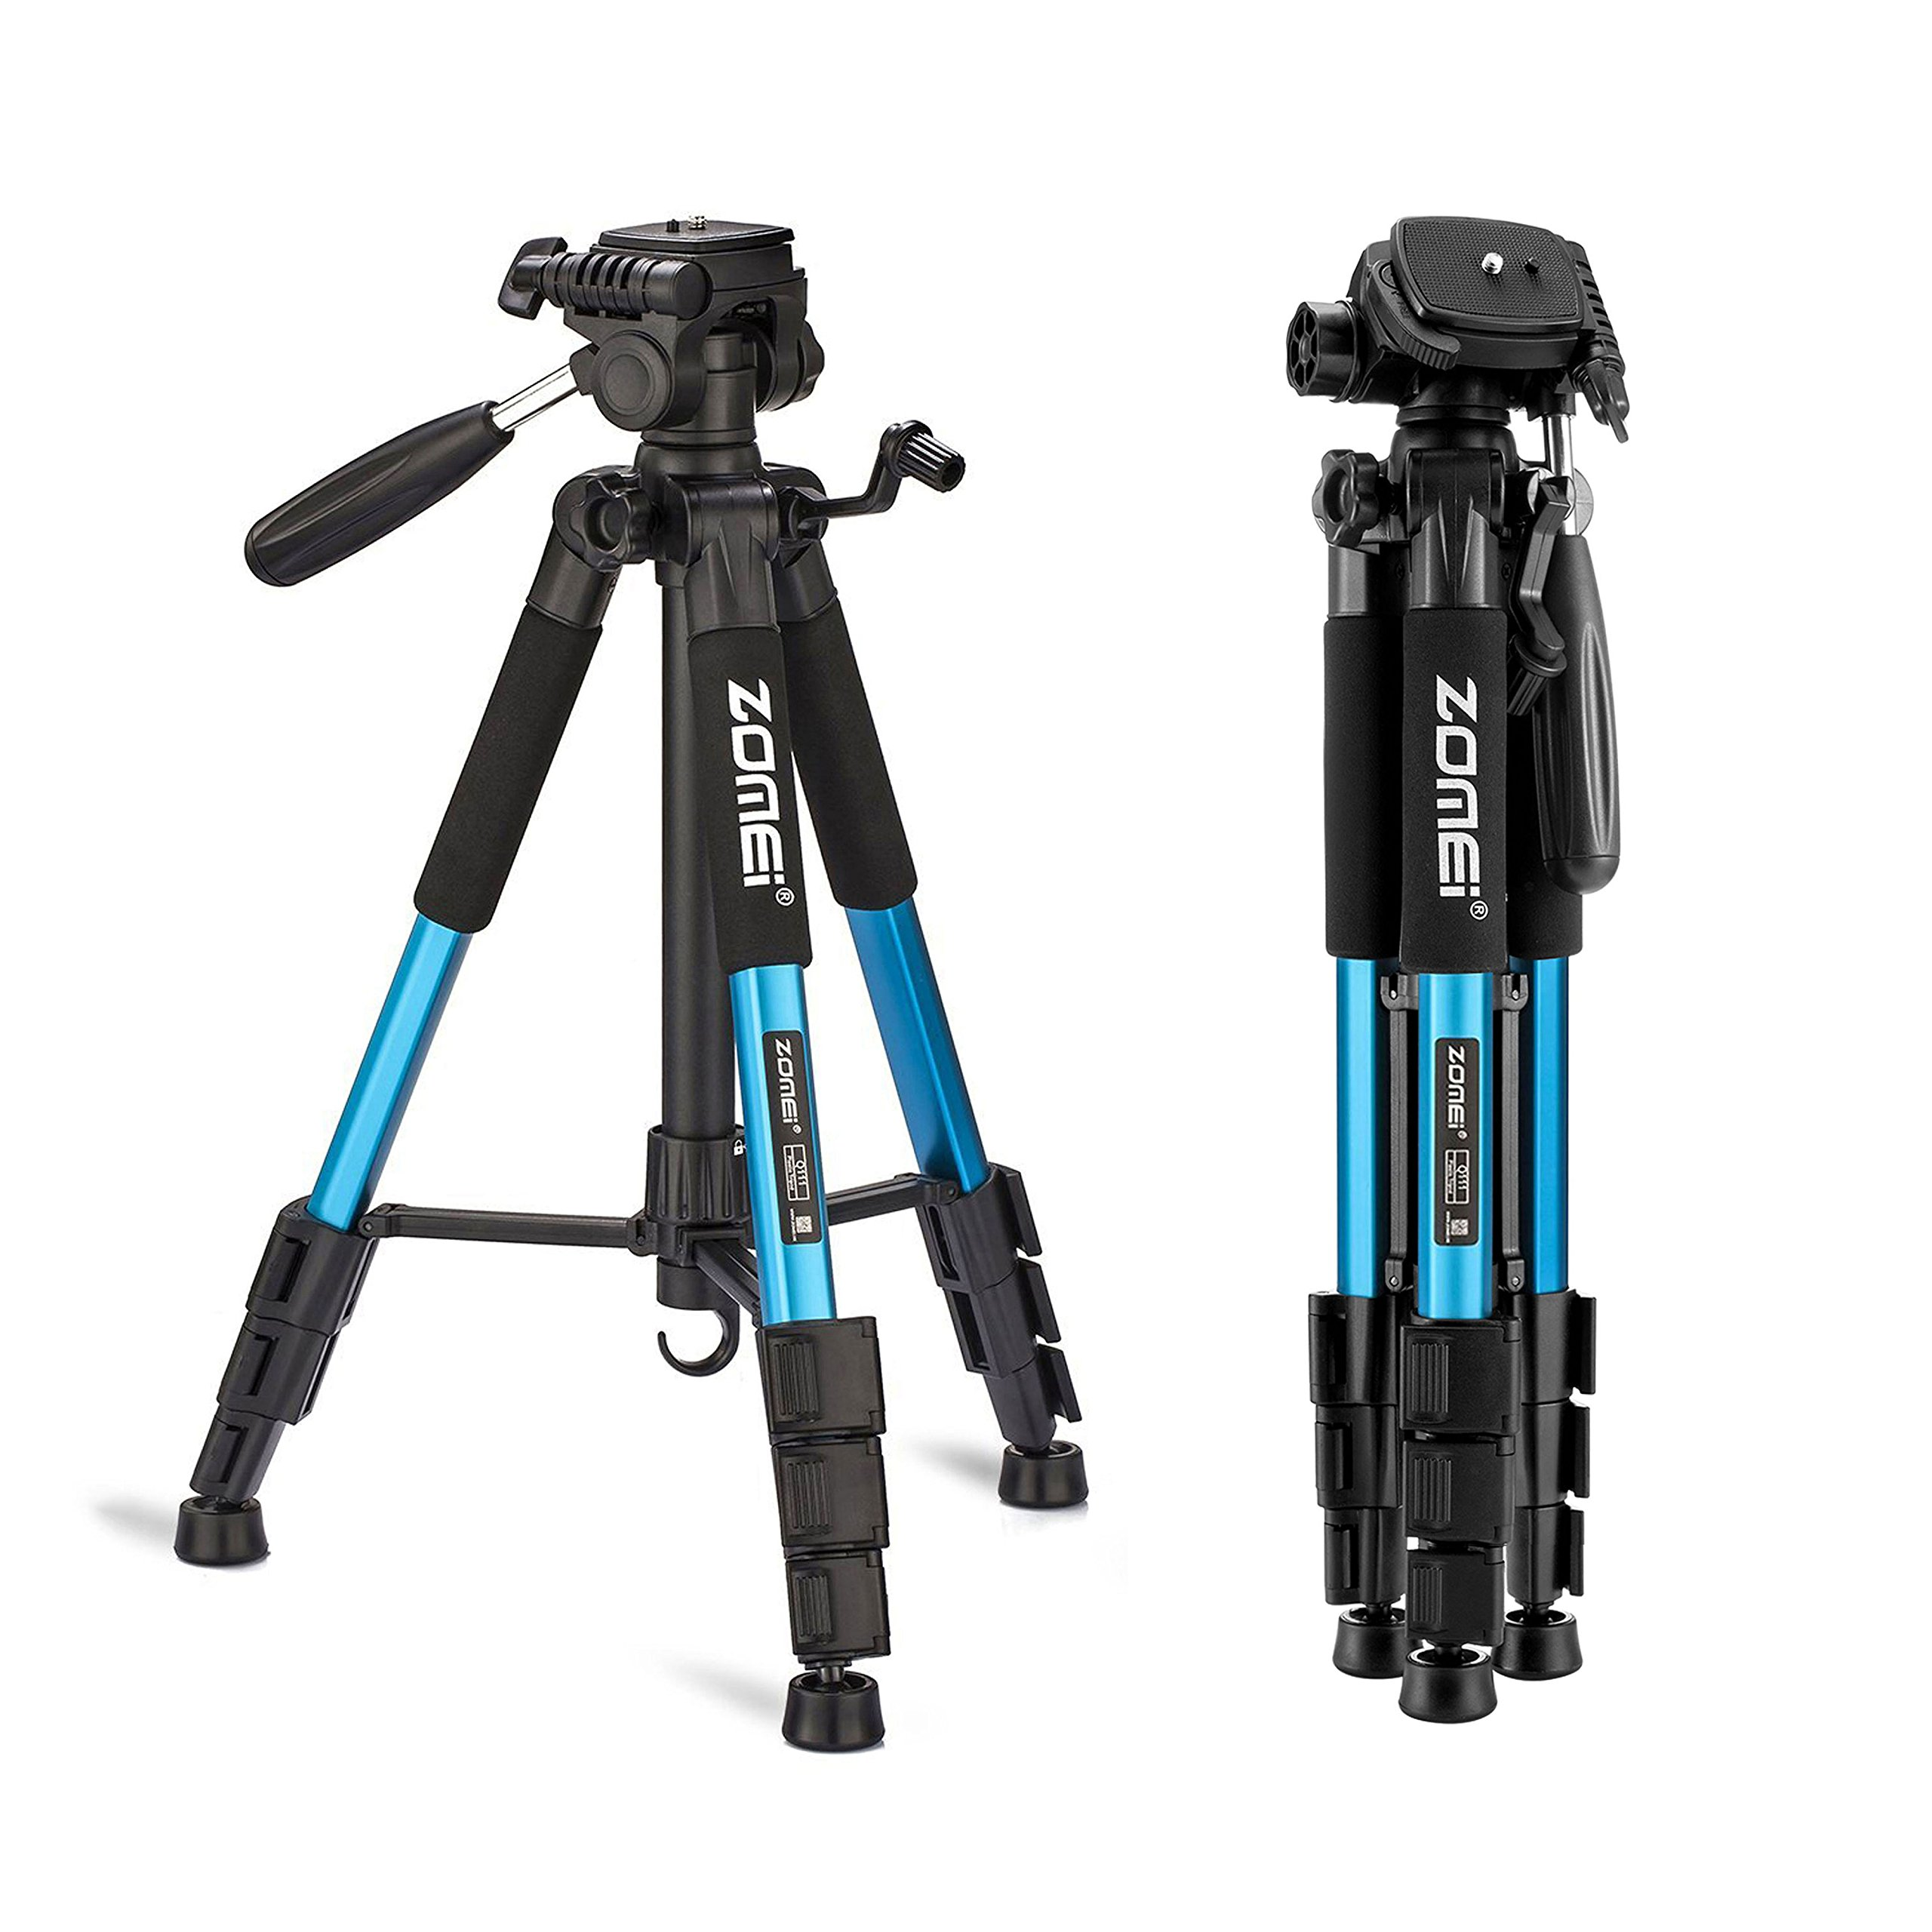 ZOMEI 55'' Compact Light Weight Travel Portable Folding SLR Camera Tripod for Canon Nikon Sony DSLR Camera Video with Carry Case(Blue)